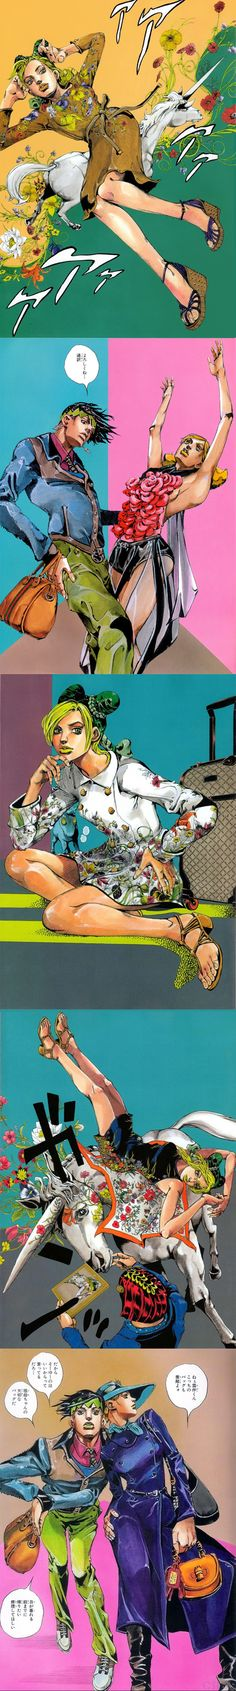 """Jolyne, Fly High"" by Hirohiko Araki for Gucci, 2013."